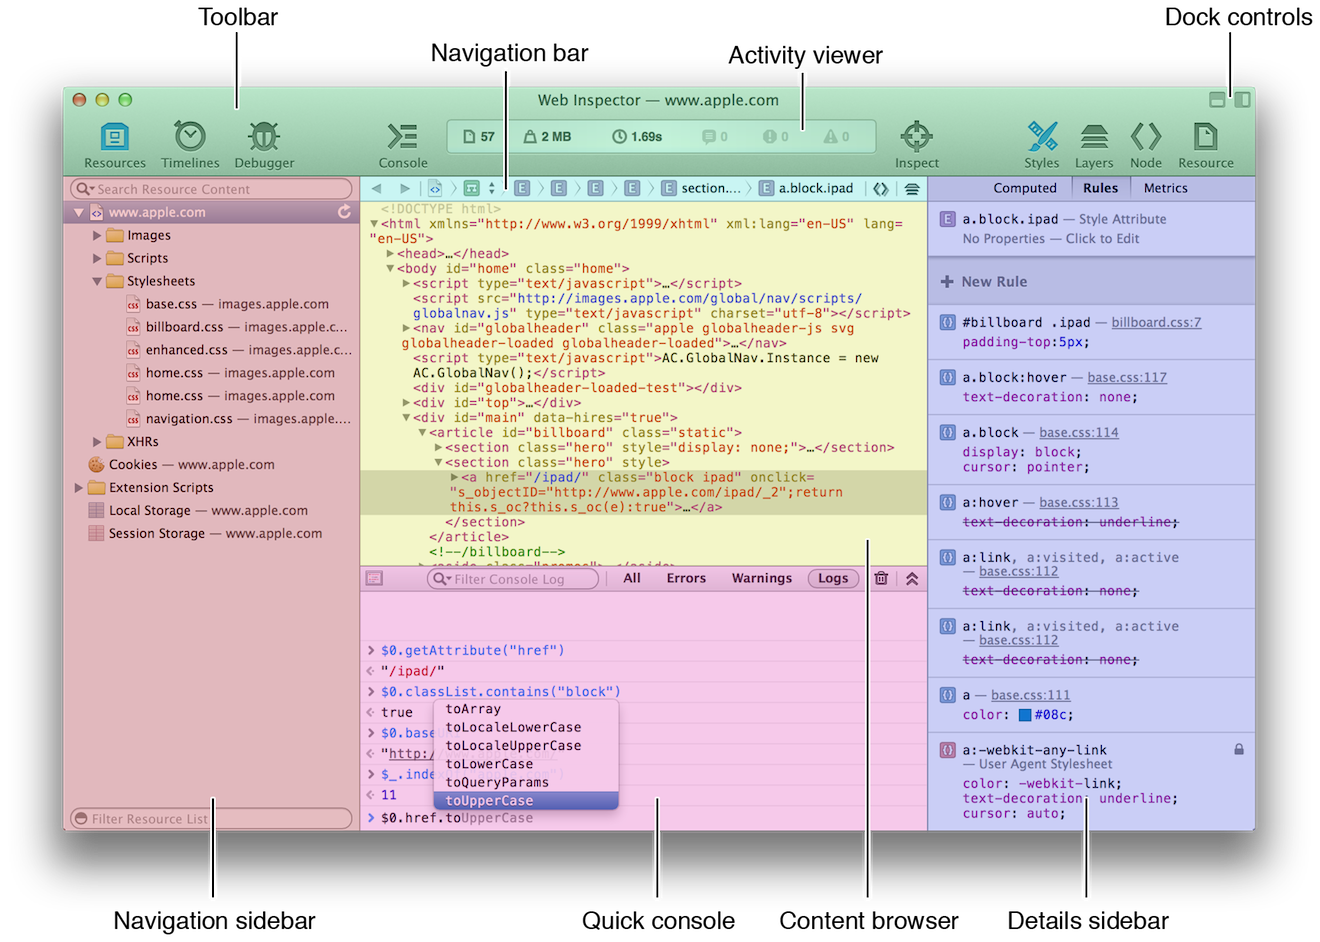 Web Inspector Layout